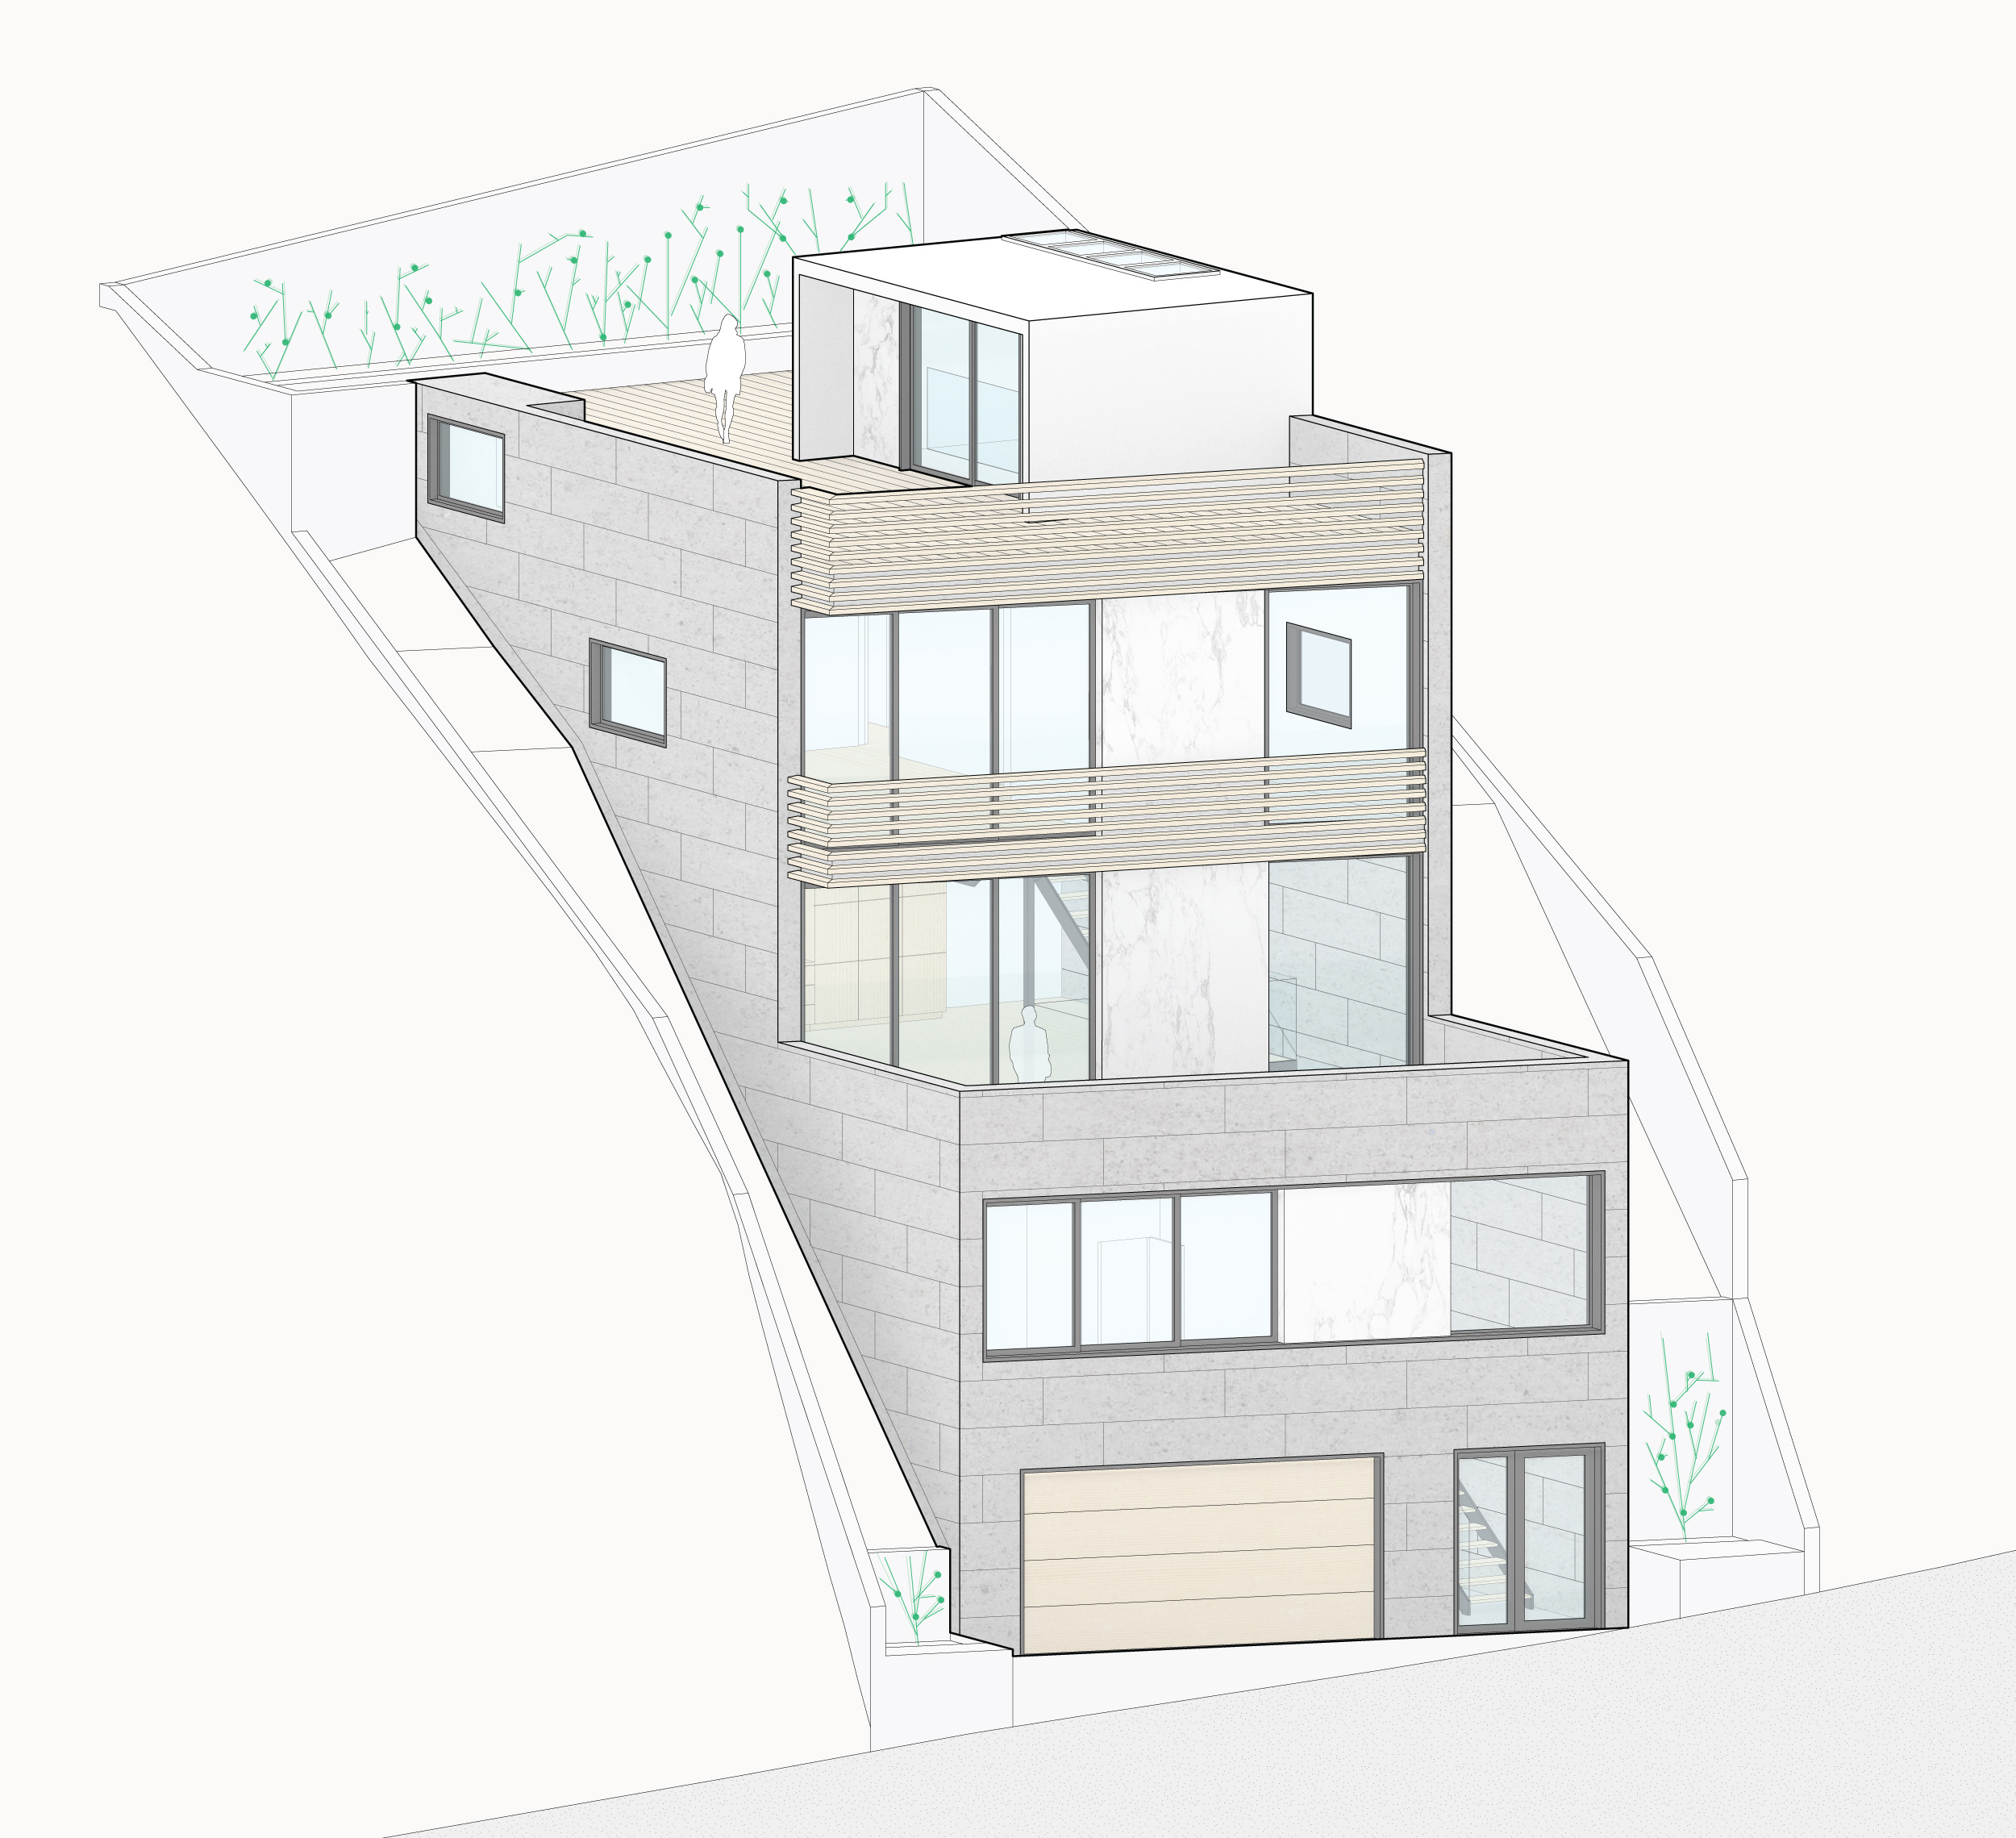 Isometric view of the front facade.